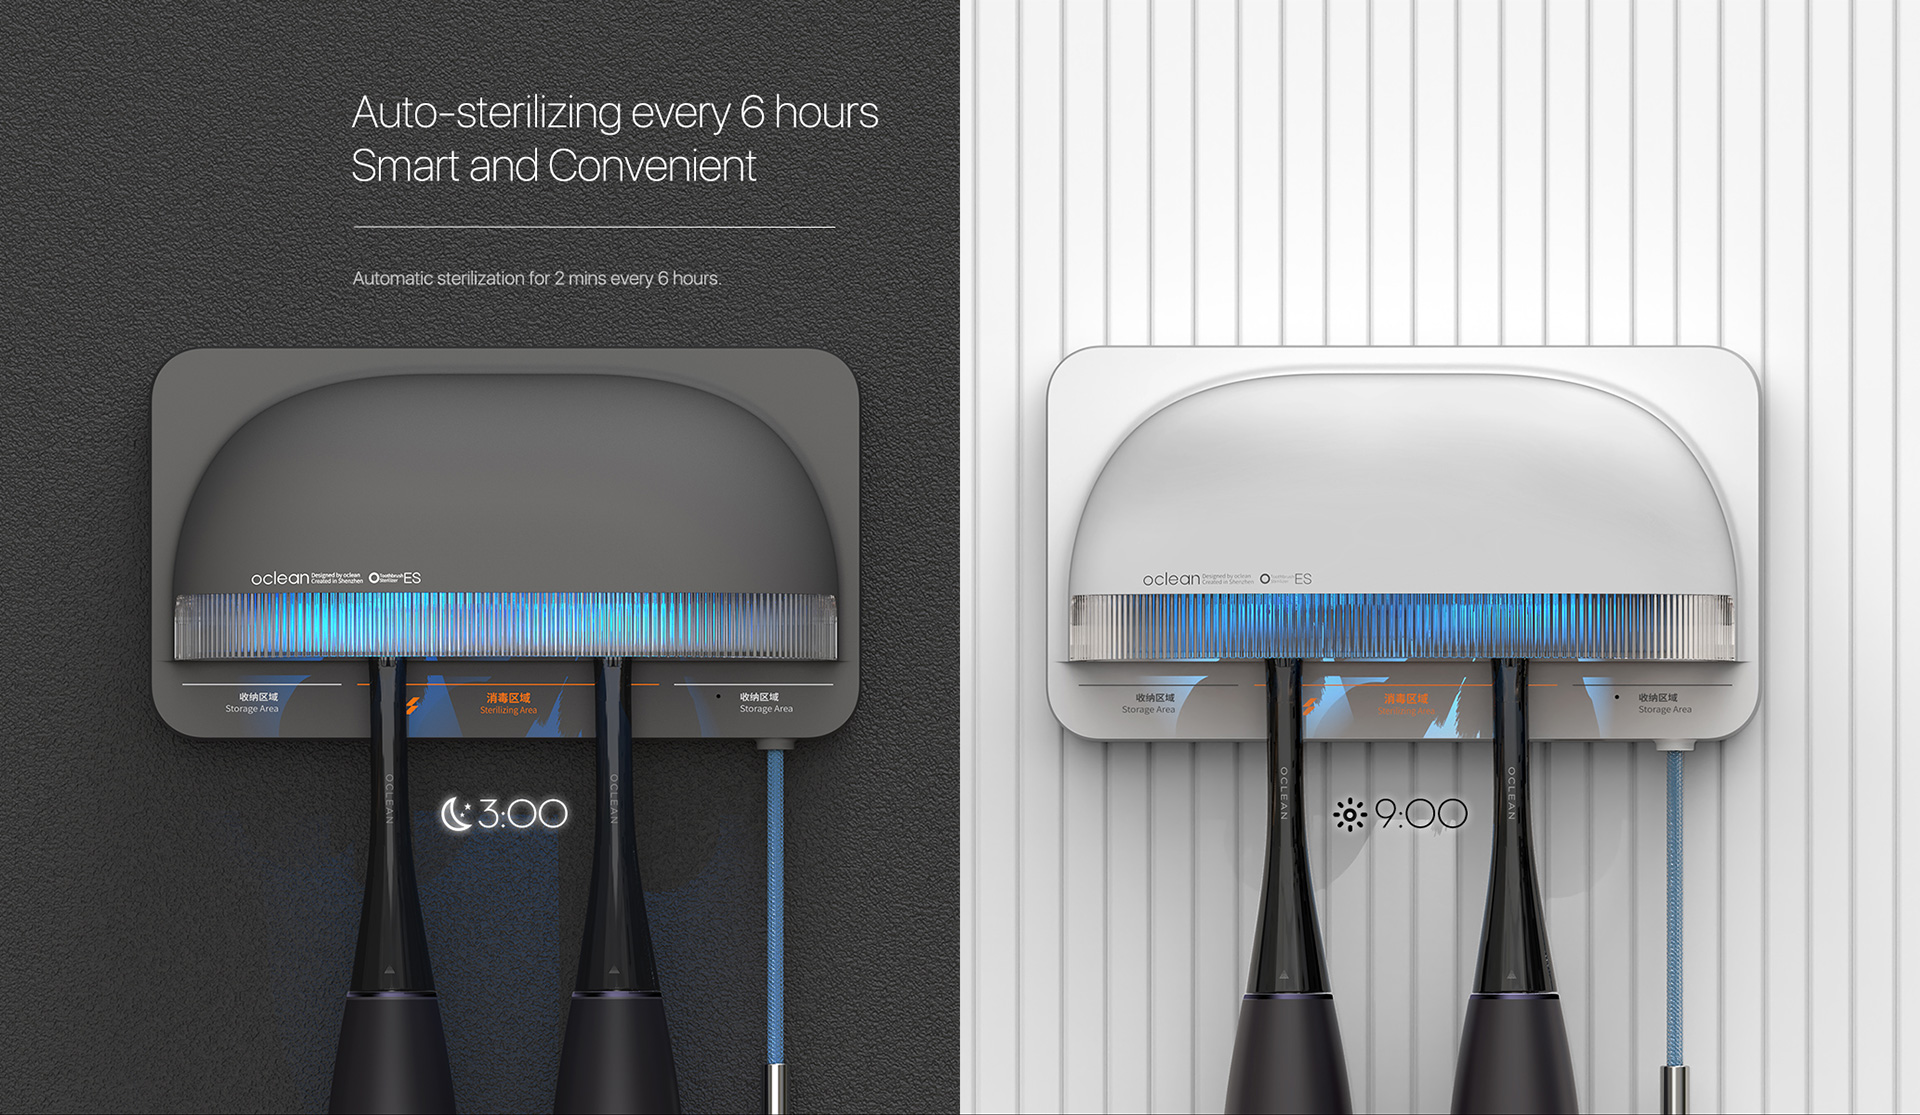 auto-sterilizing every 6 hours smart and convenient